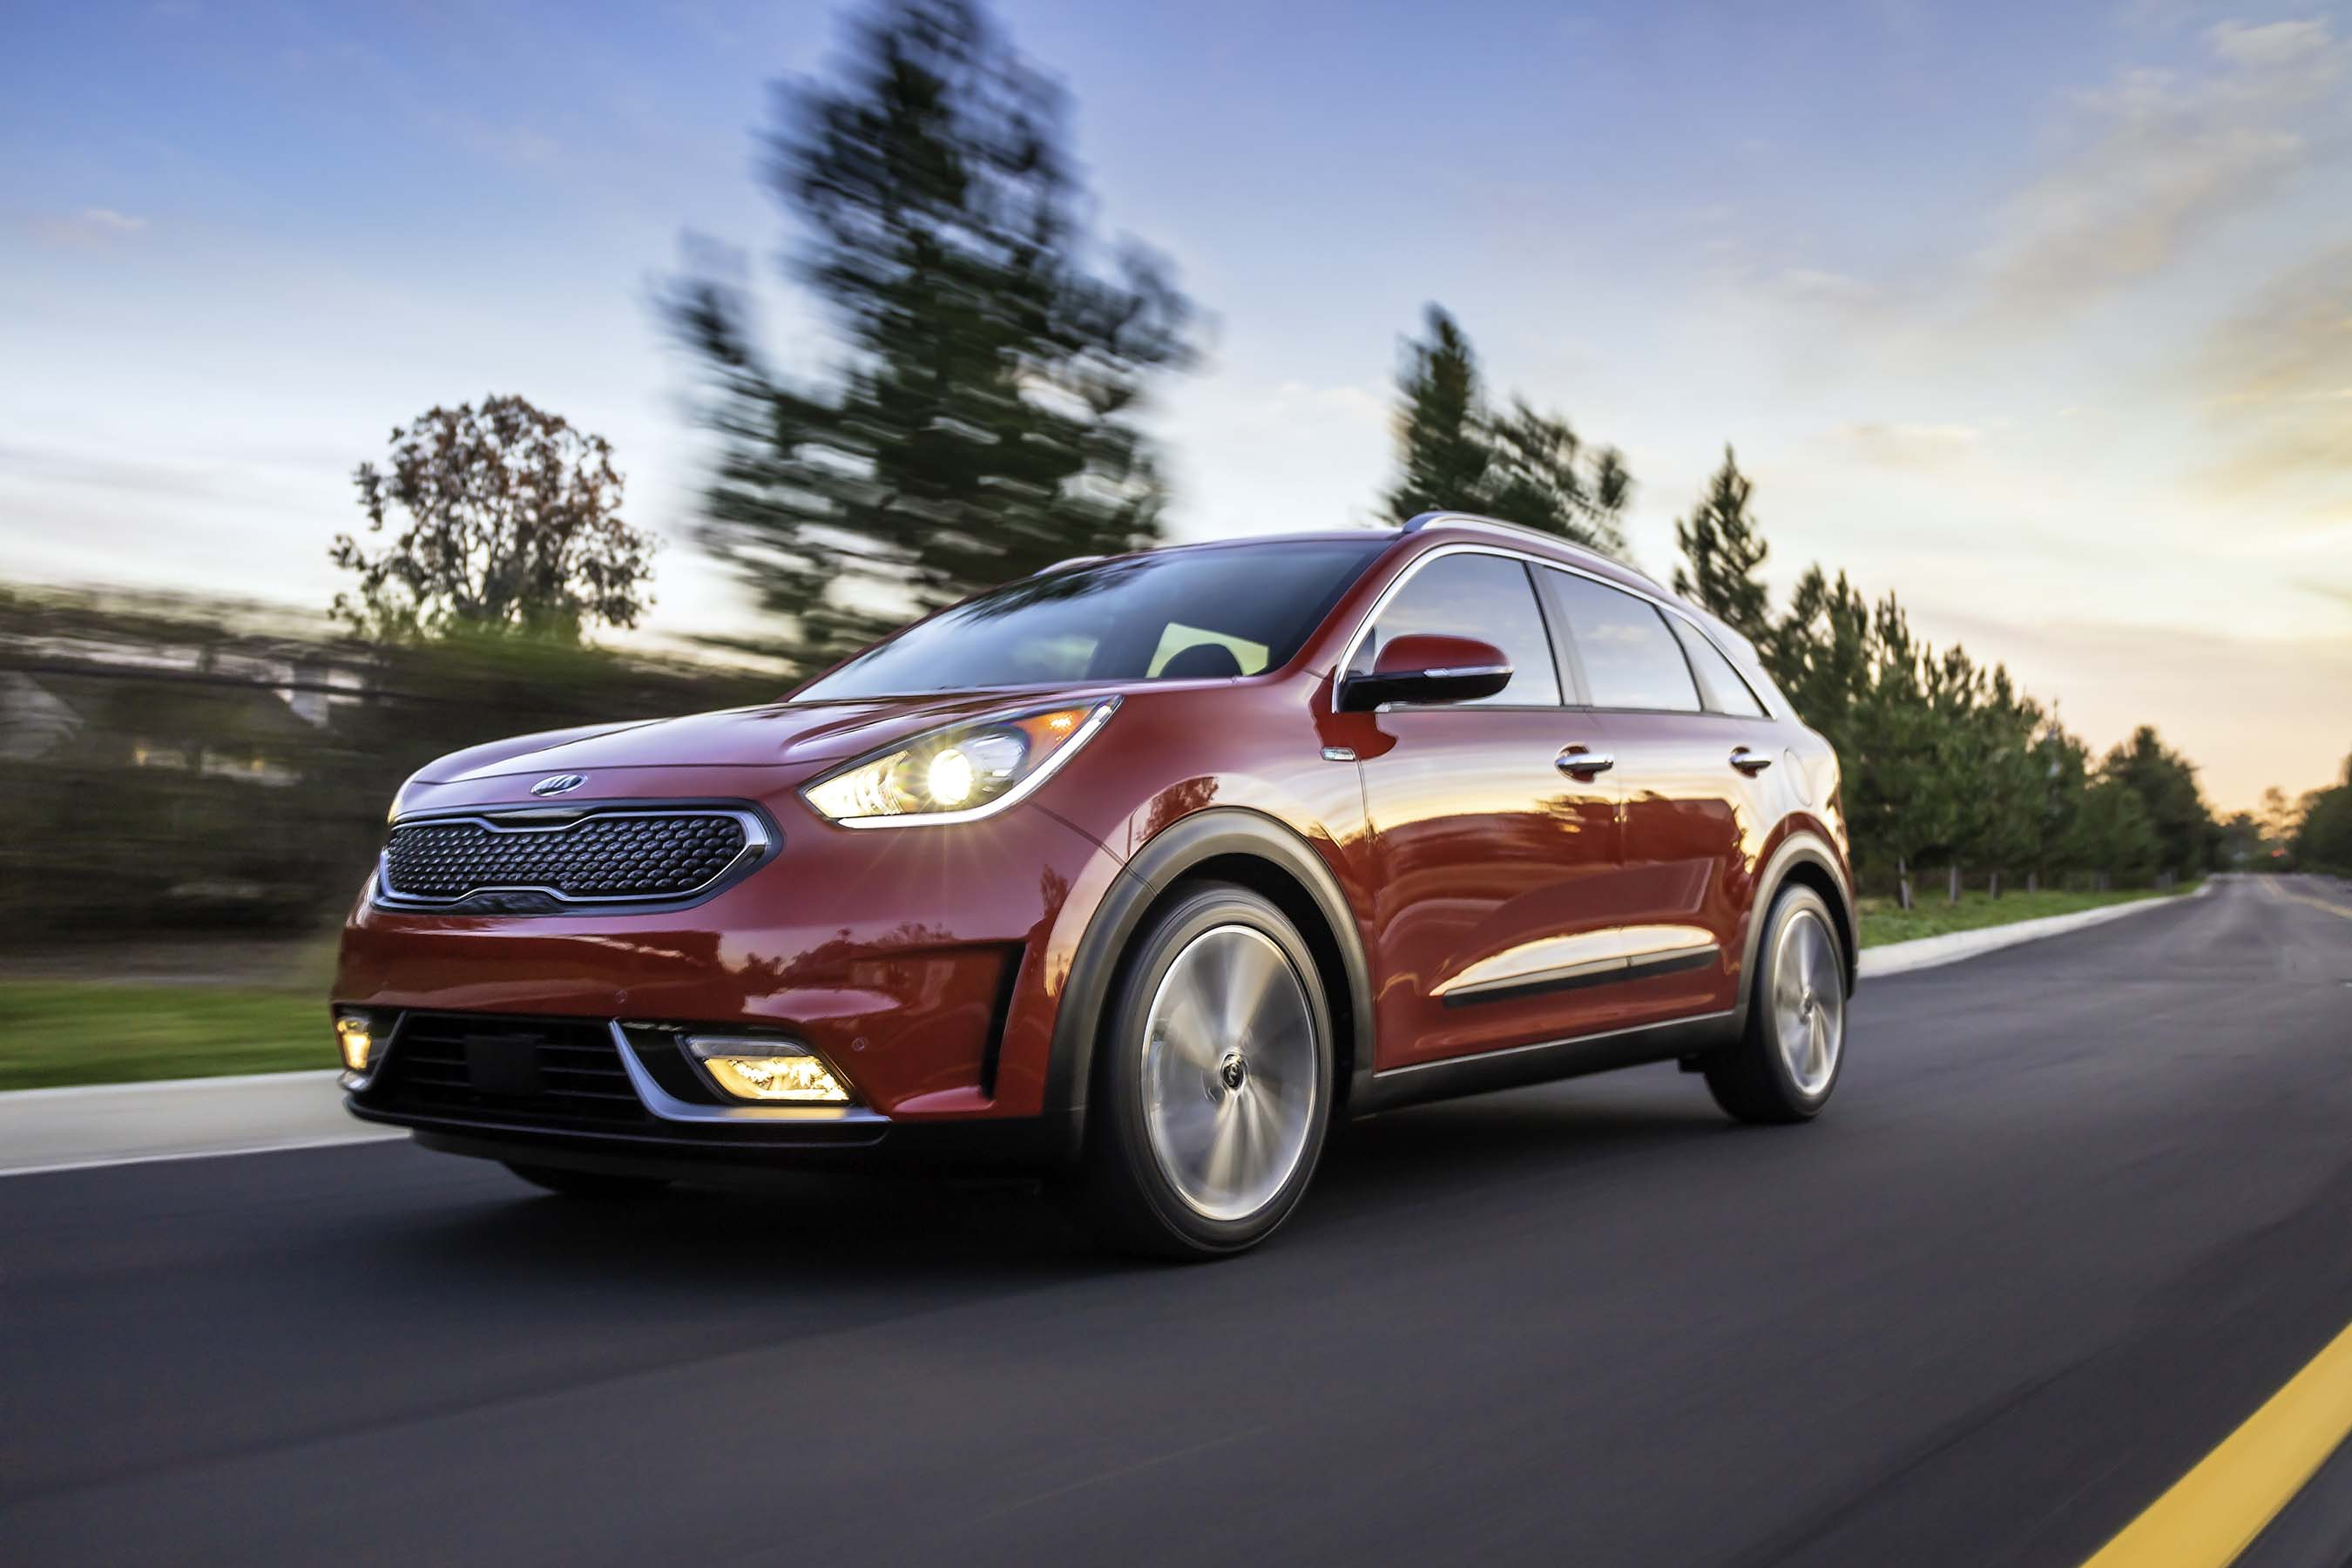 All-new 2017 Kia Niro Hybrid Utility Vehicle arrives in the Windy City for global debut at Chicago Auto Show.